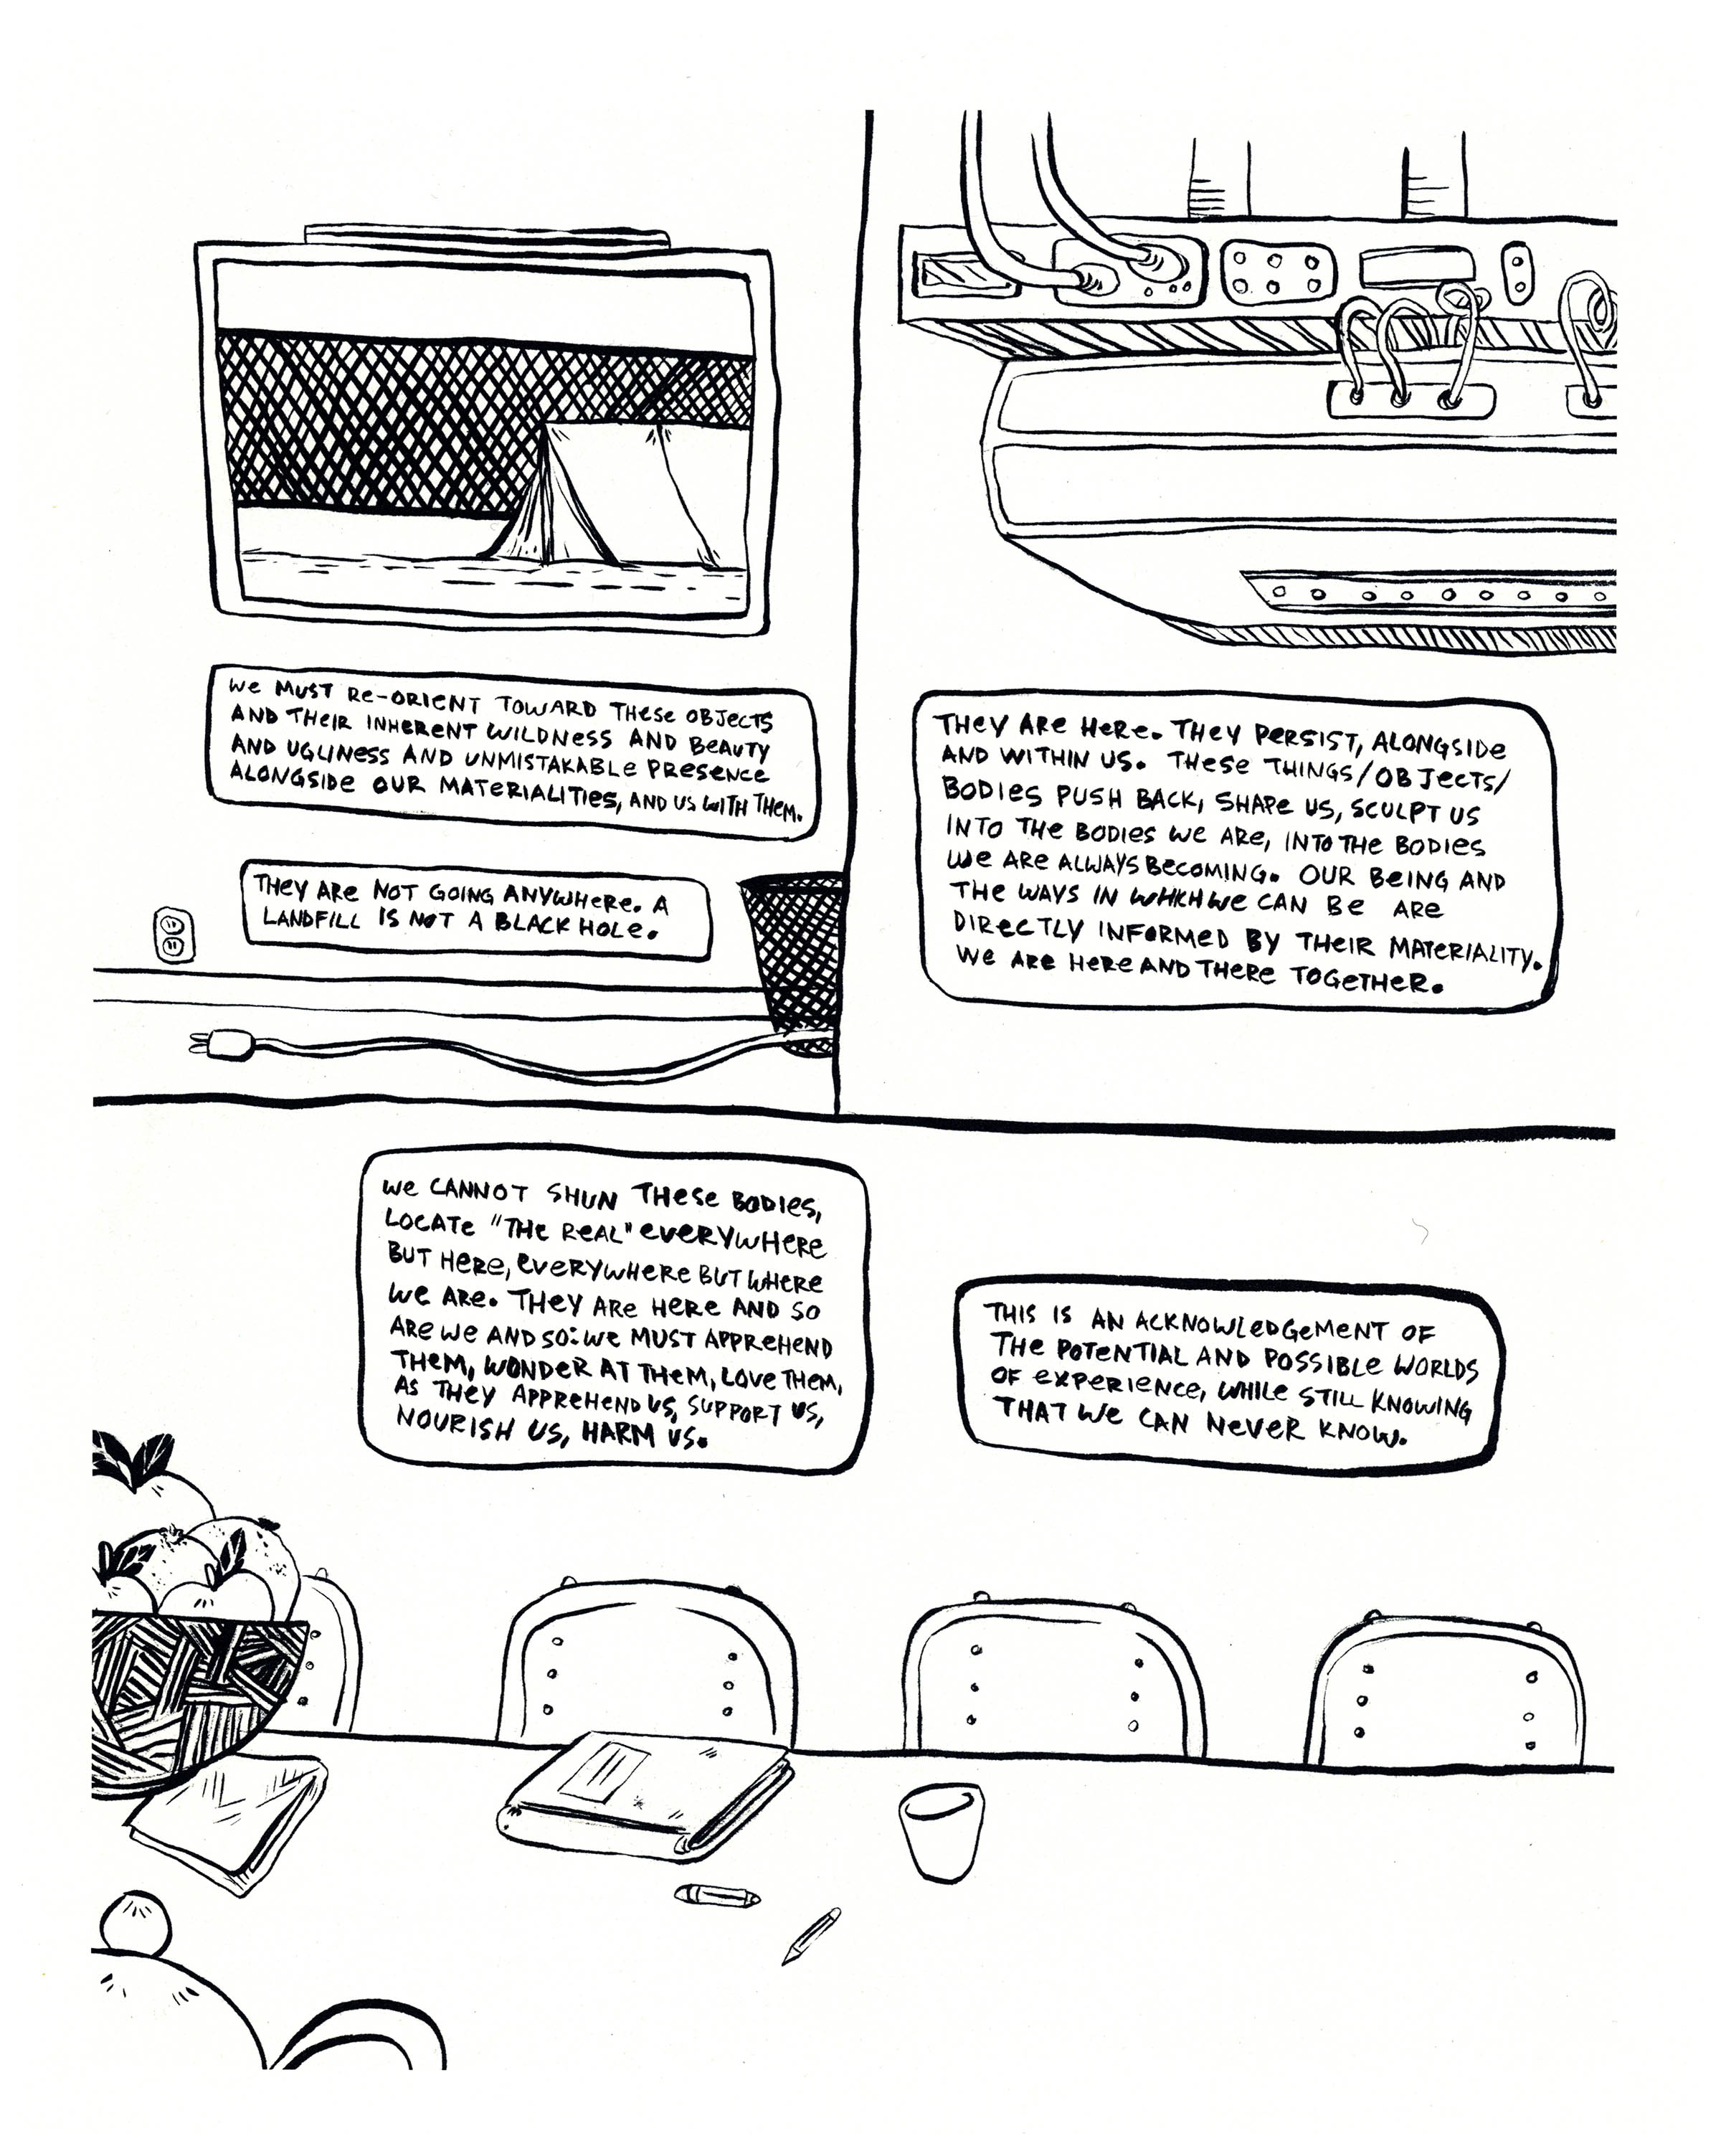 A page from Witchbody. Three panels depict everyday objects: an unplugged cord, an empty wastebasket, a tent seen through a window, a piece of electronic equipment, a long table with a bowl of fruit, a teapot, and a notebook on top.